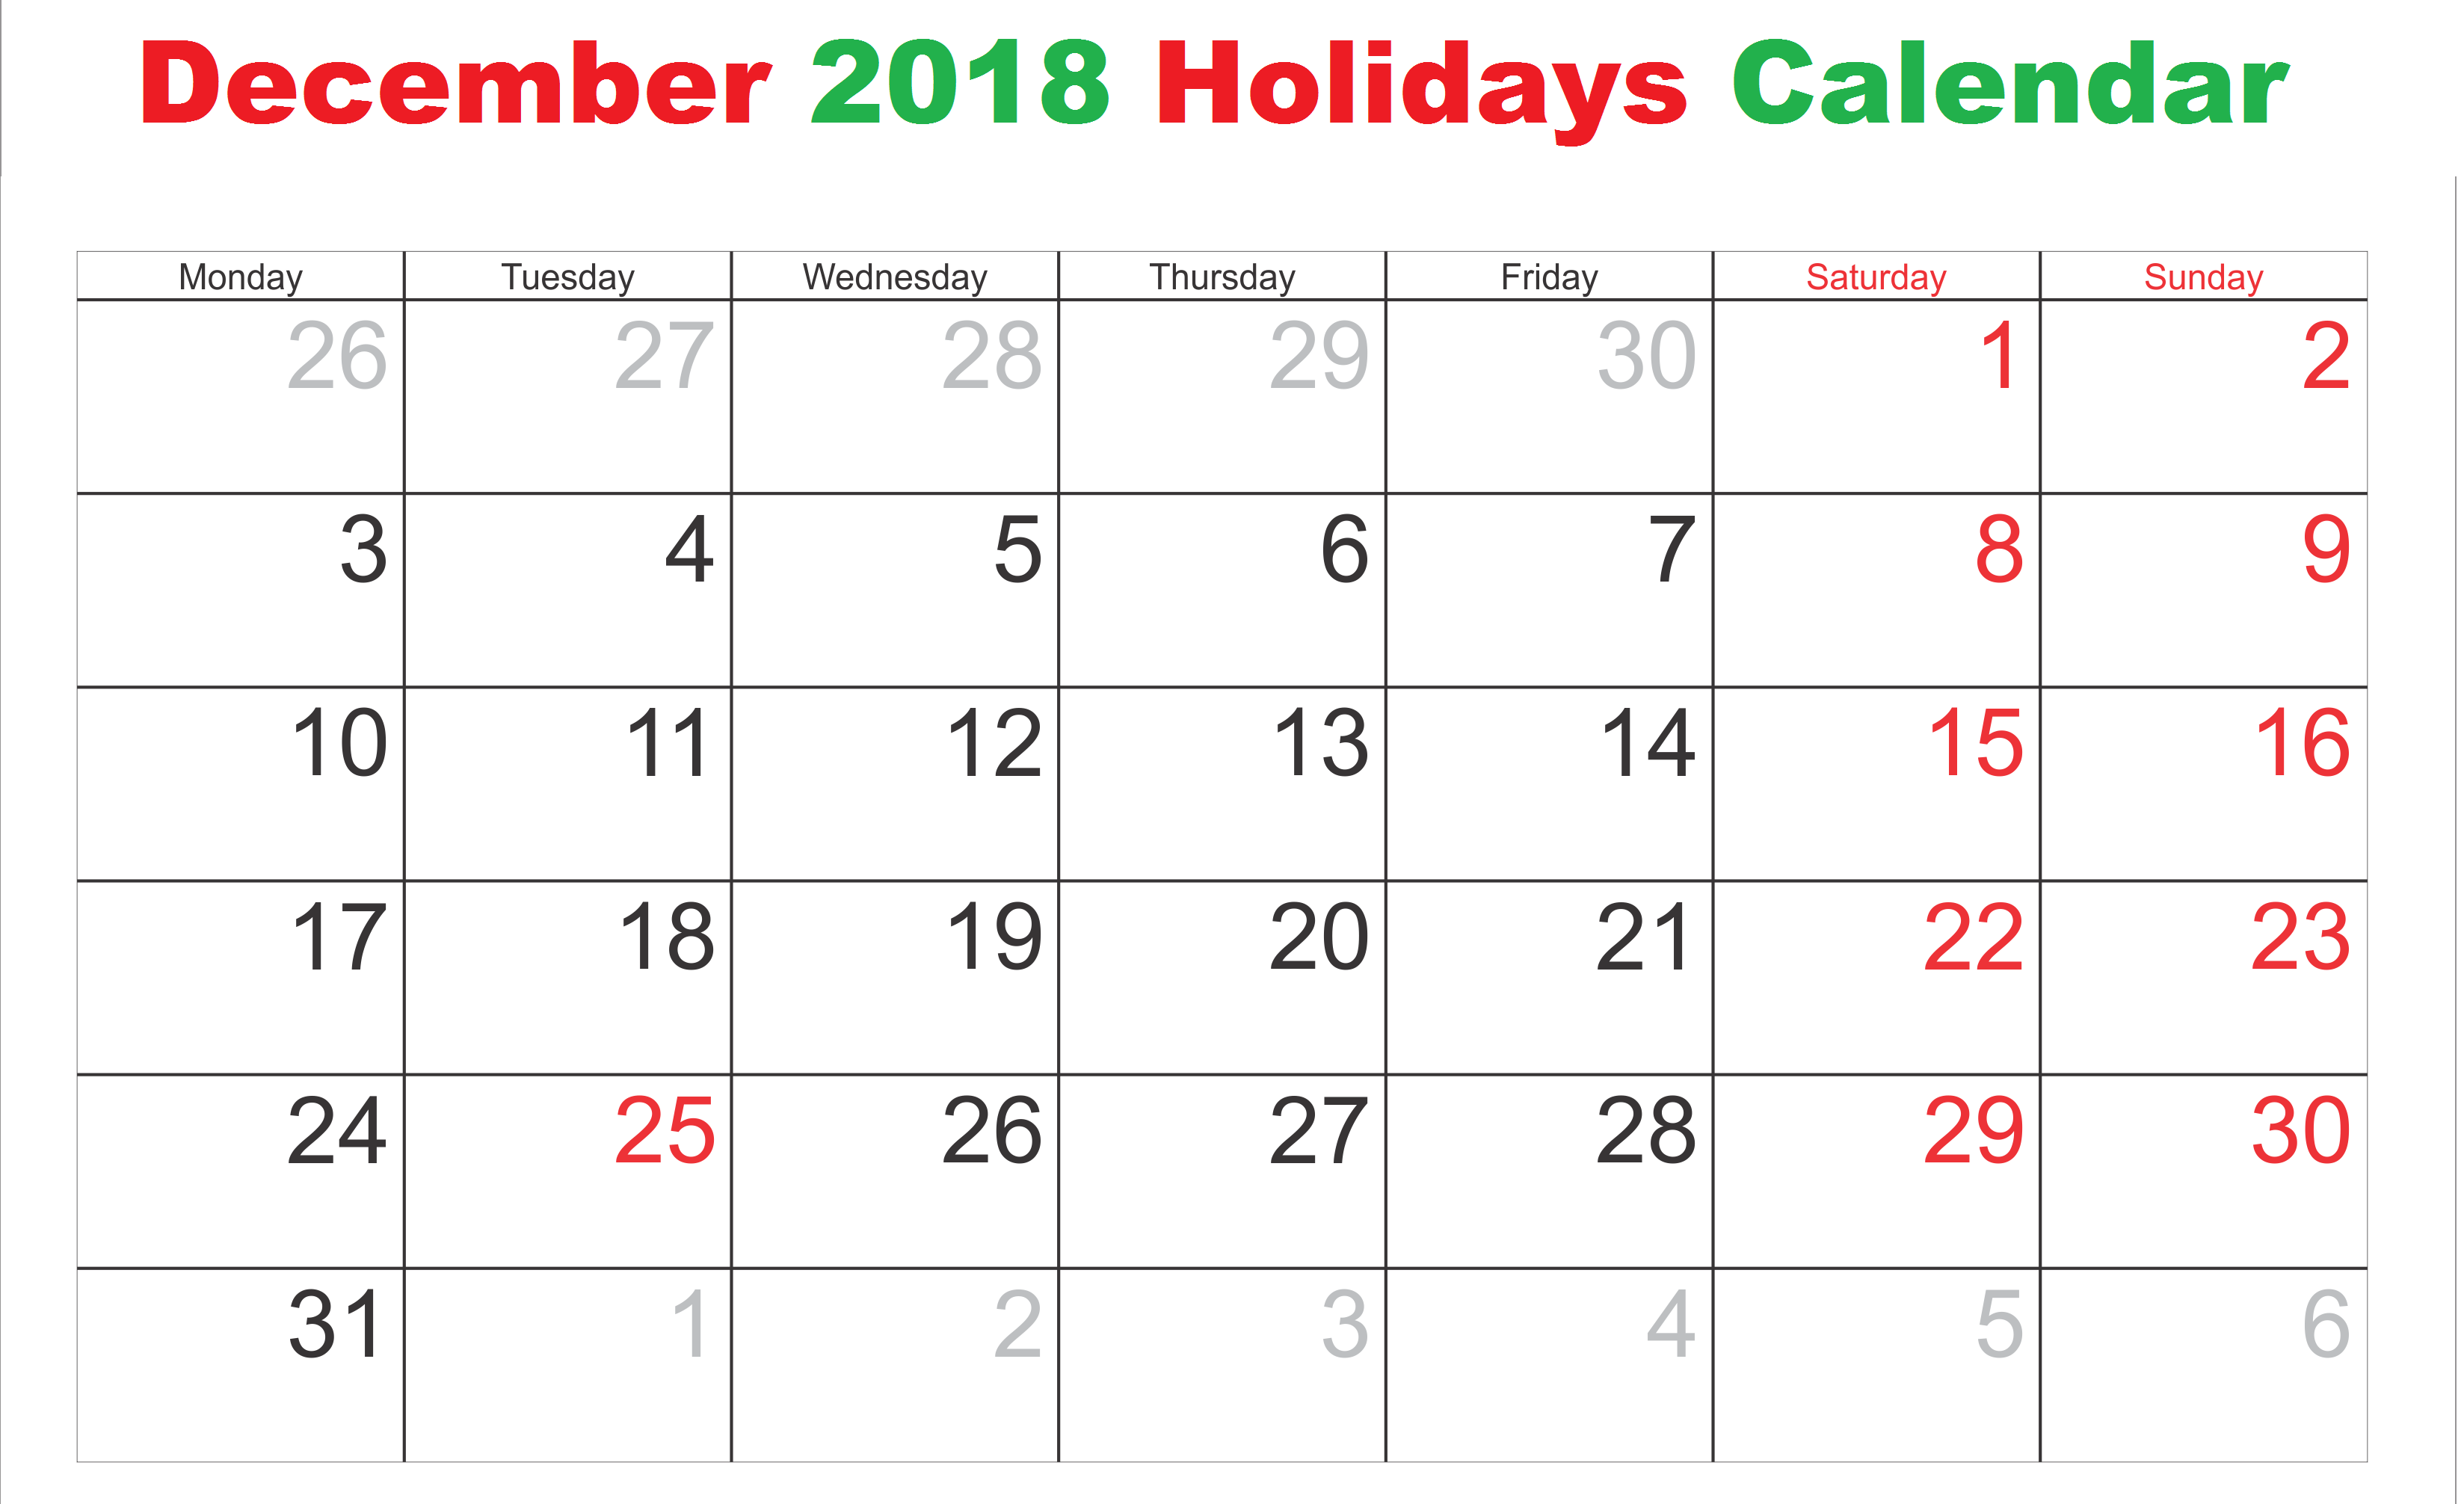 December 2018 Calendar USA National Holidays